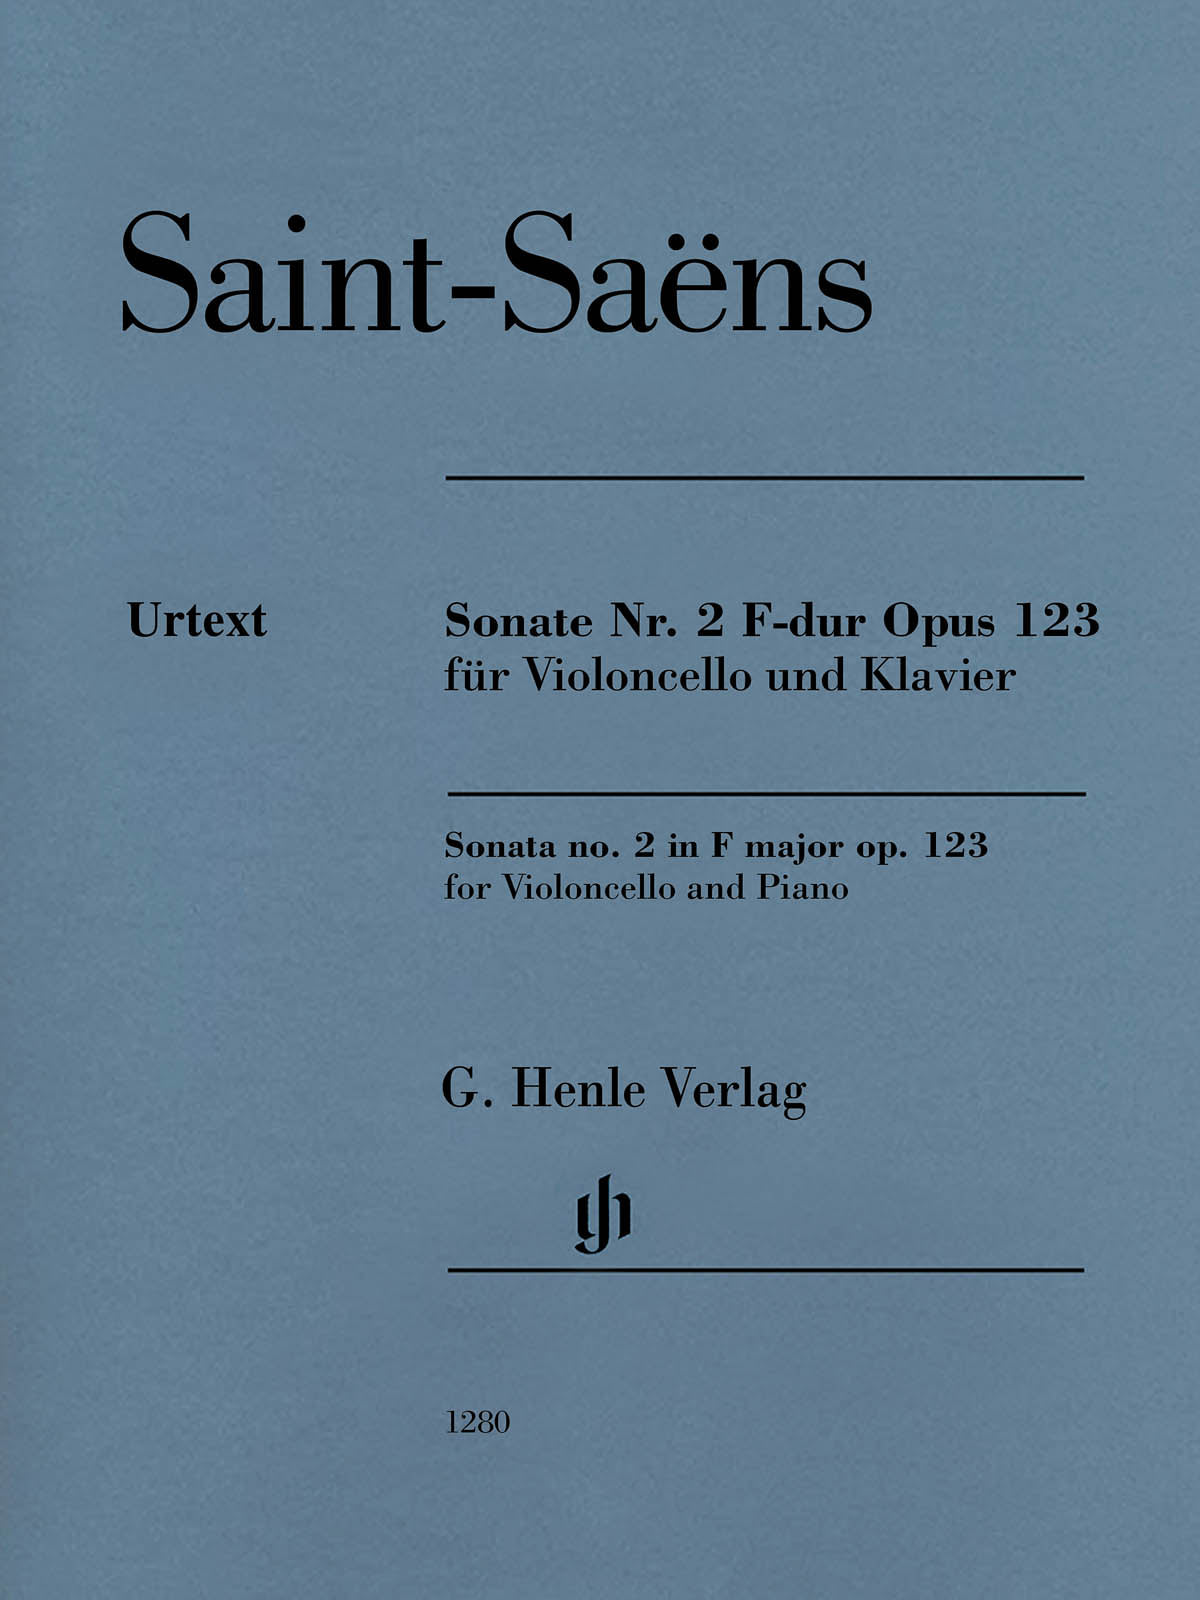 Saint-Saëns: Cello Sonata No. 2 in F Major, Op. 123